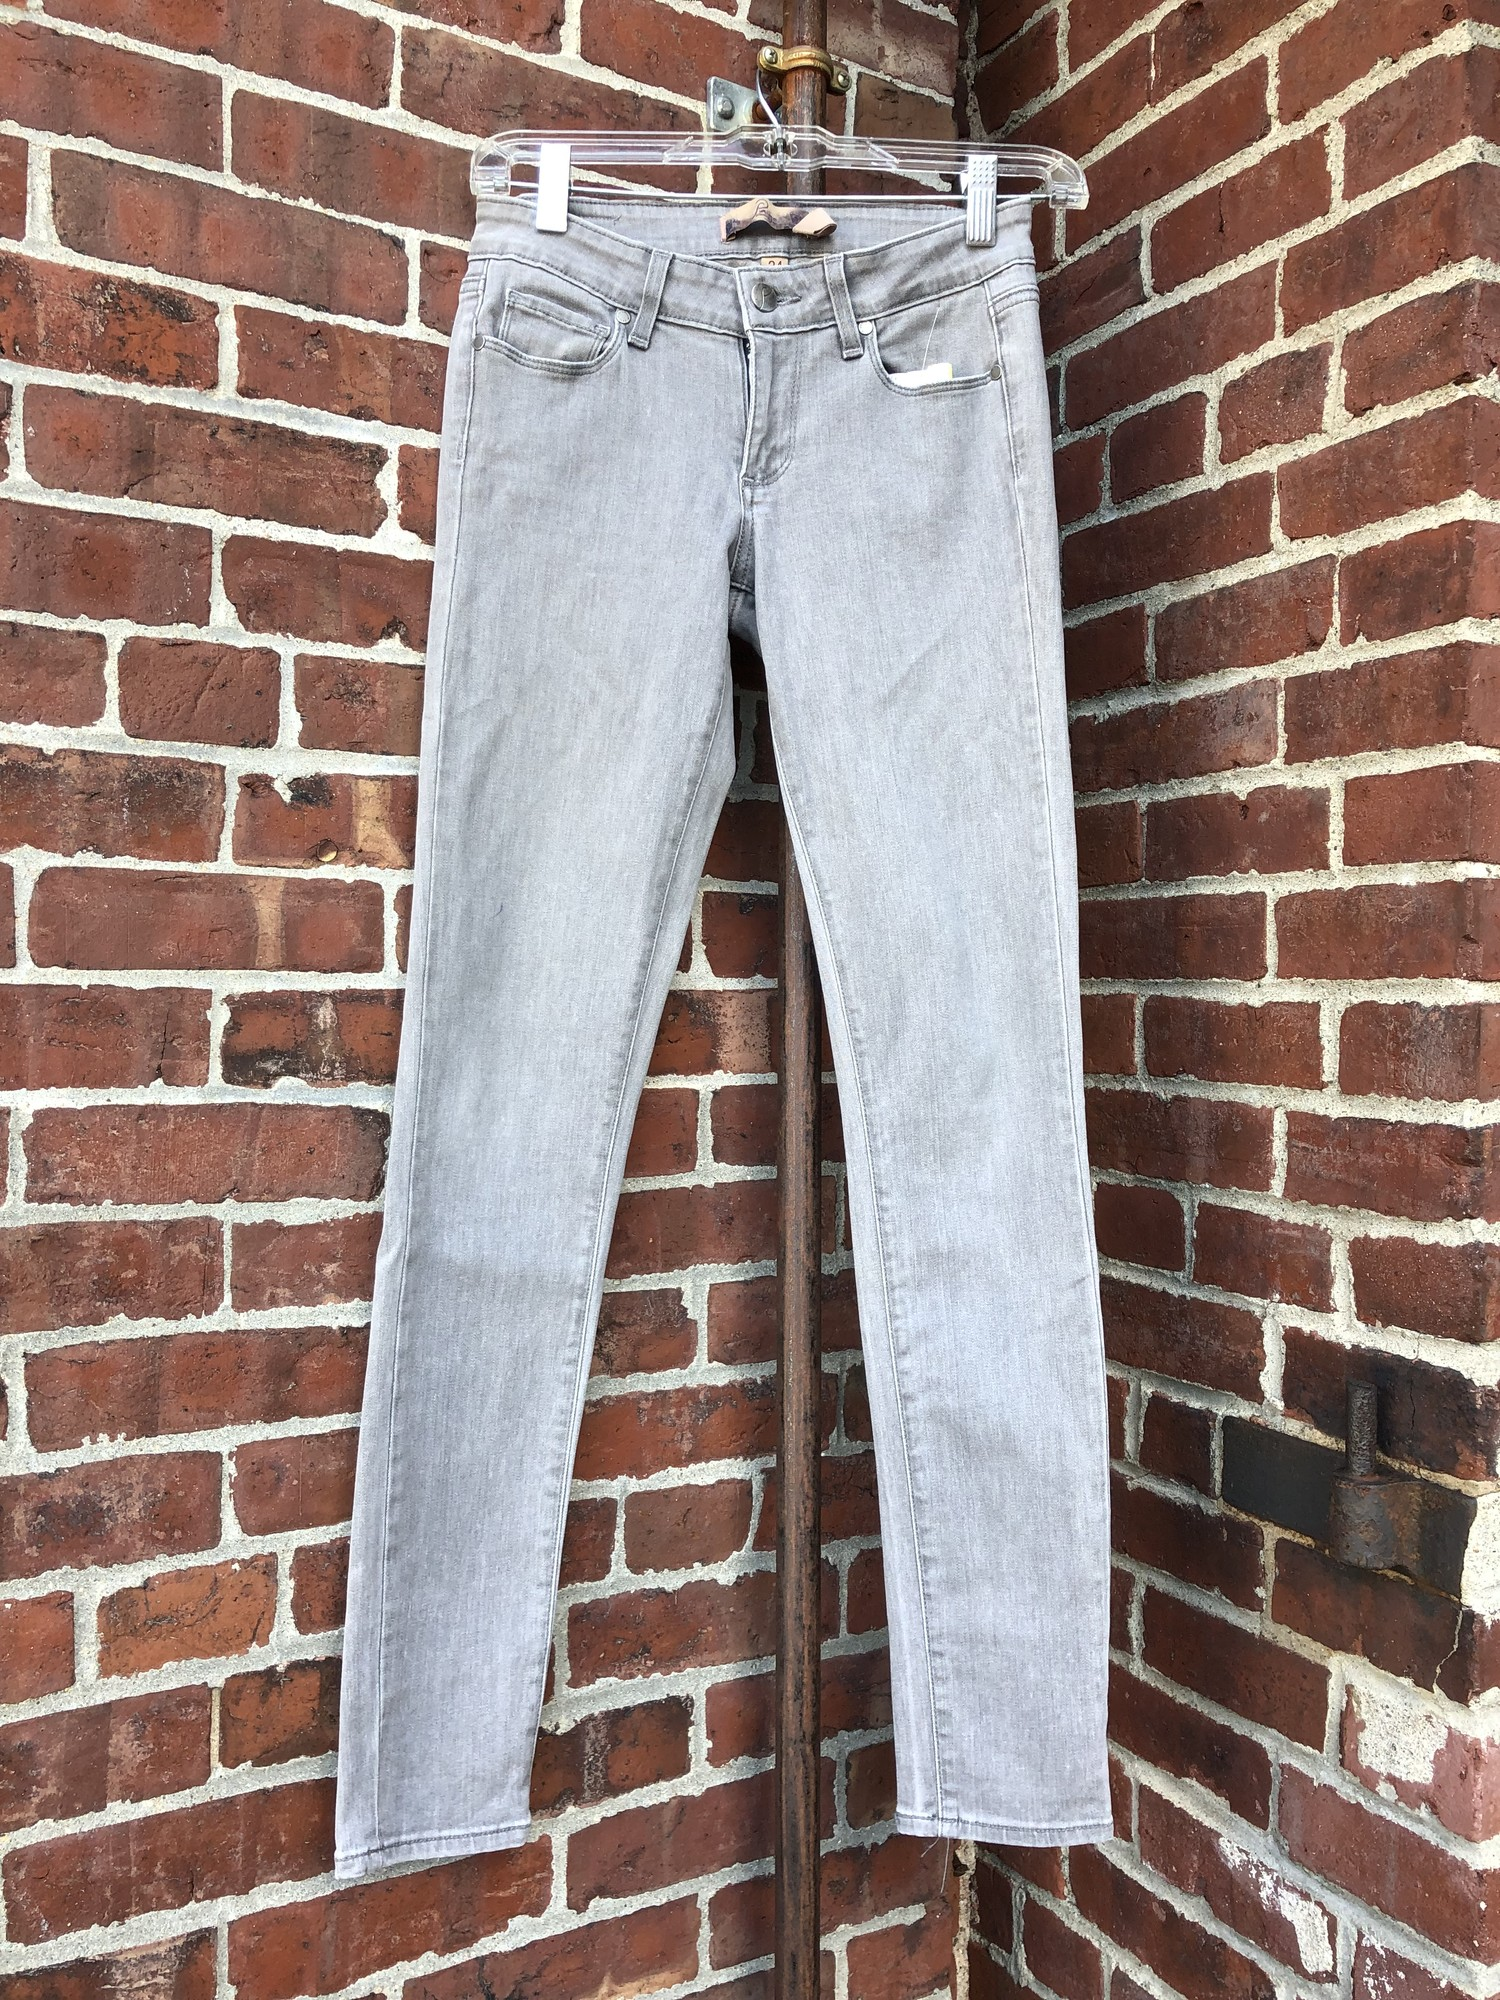 Paige Jeans, Grey, Size 24. In New Condition.